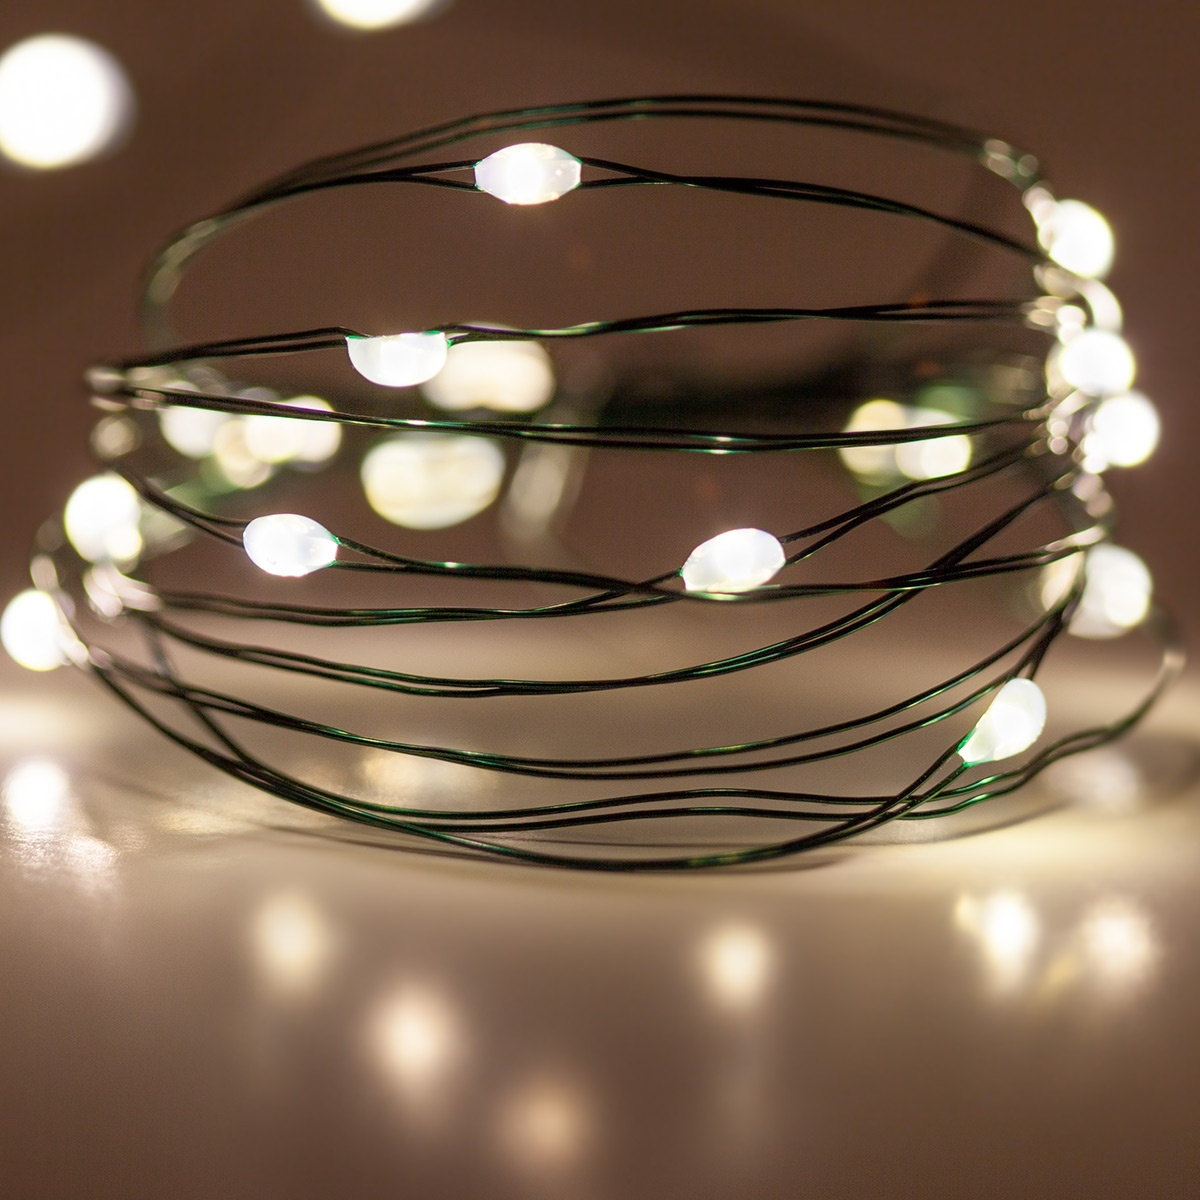 Battery Operated Lights - 18 Warm White Battery Operated LED Fairy Lights Green Wire & Battery Operated Lights - 18 Warm White Battery Operated LED Fairy ...